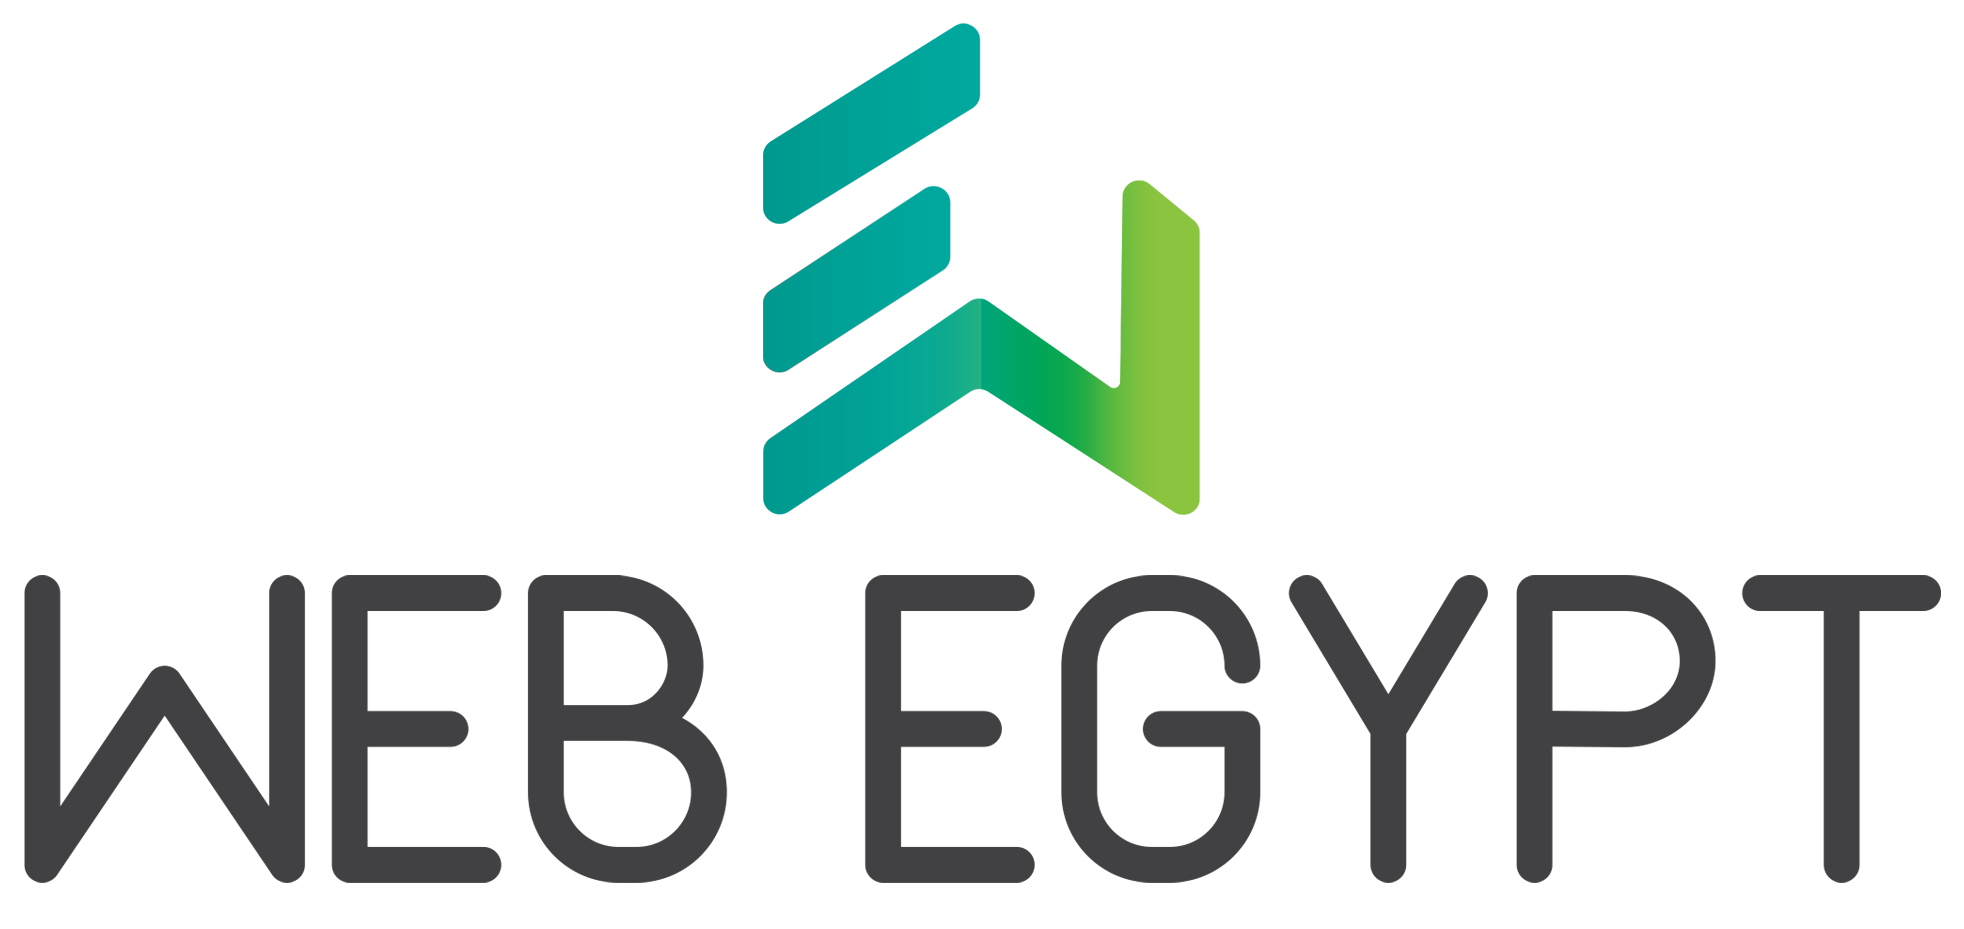 web design company in egypt web egypt logo